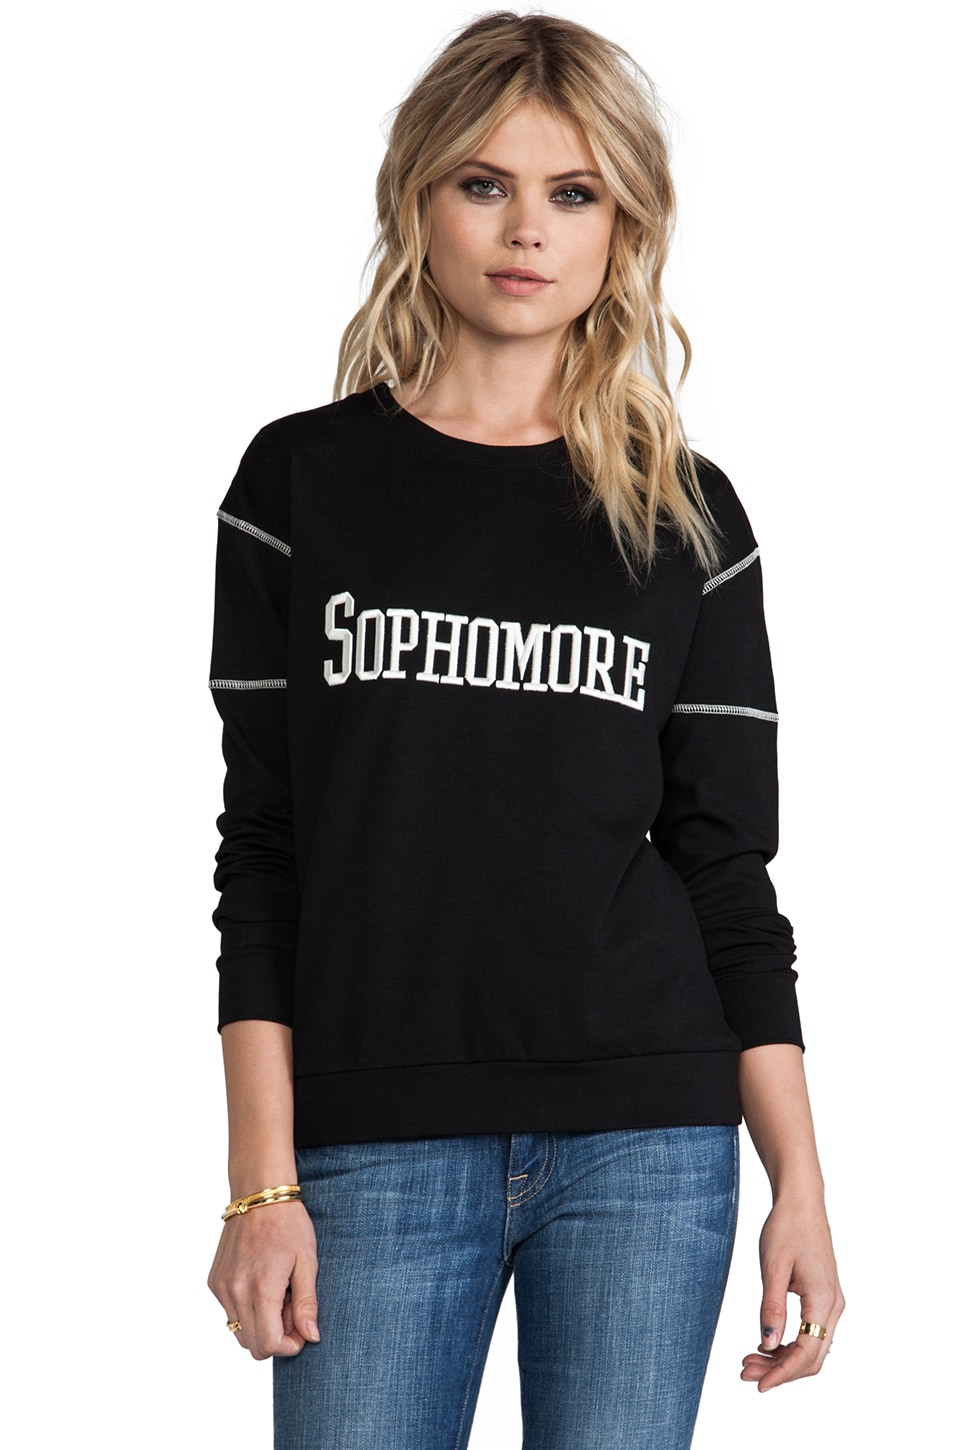 Pencey Sophomore Sweatshirt in Black